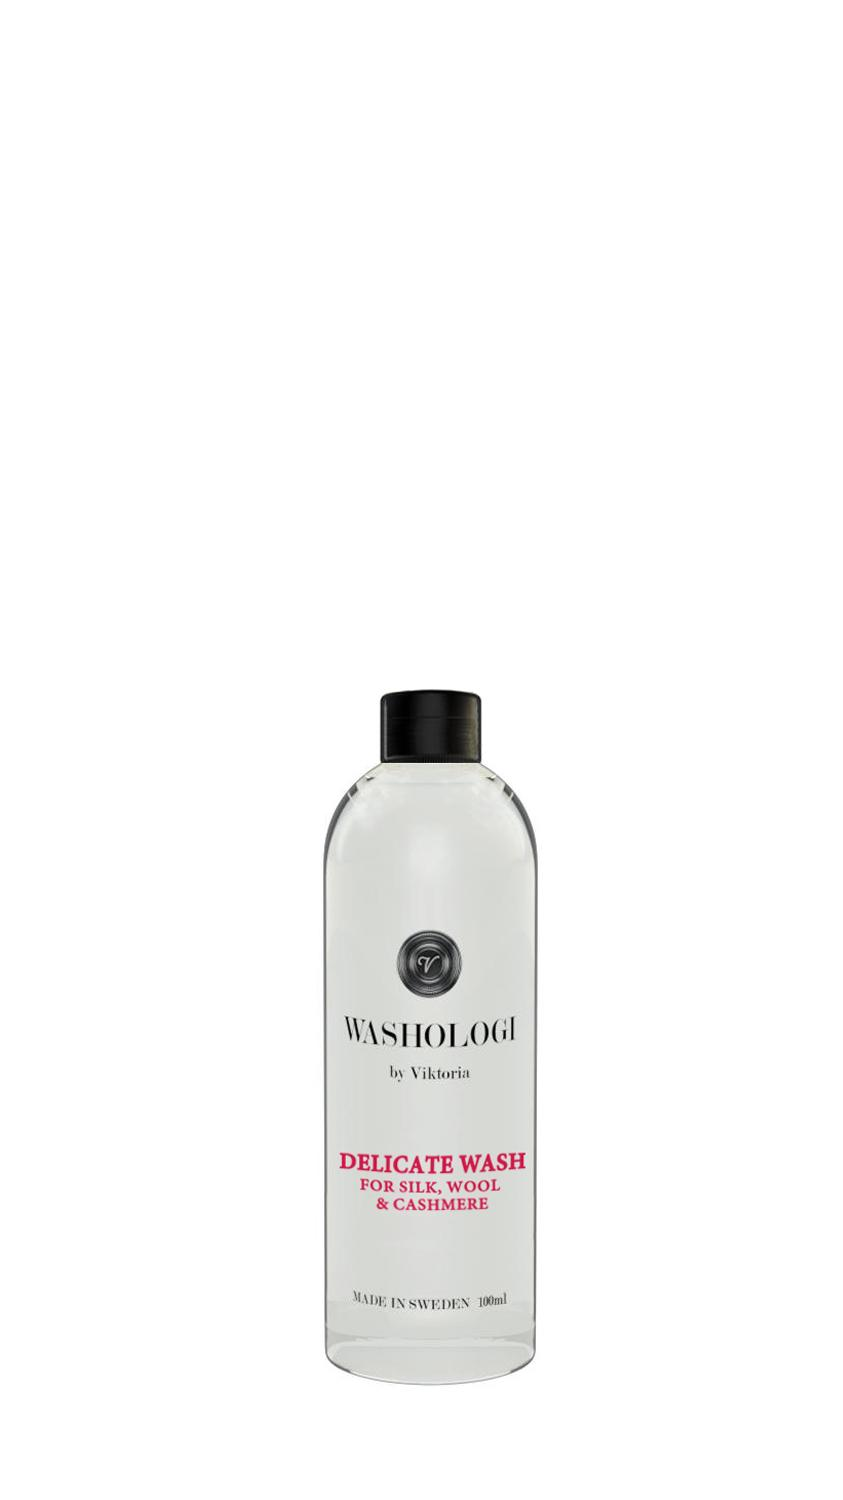 Travelbottle Delicatewash 100ml 1pc